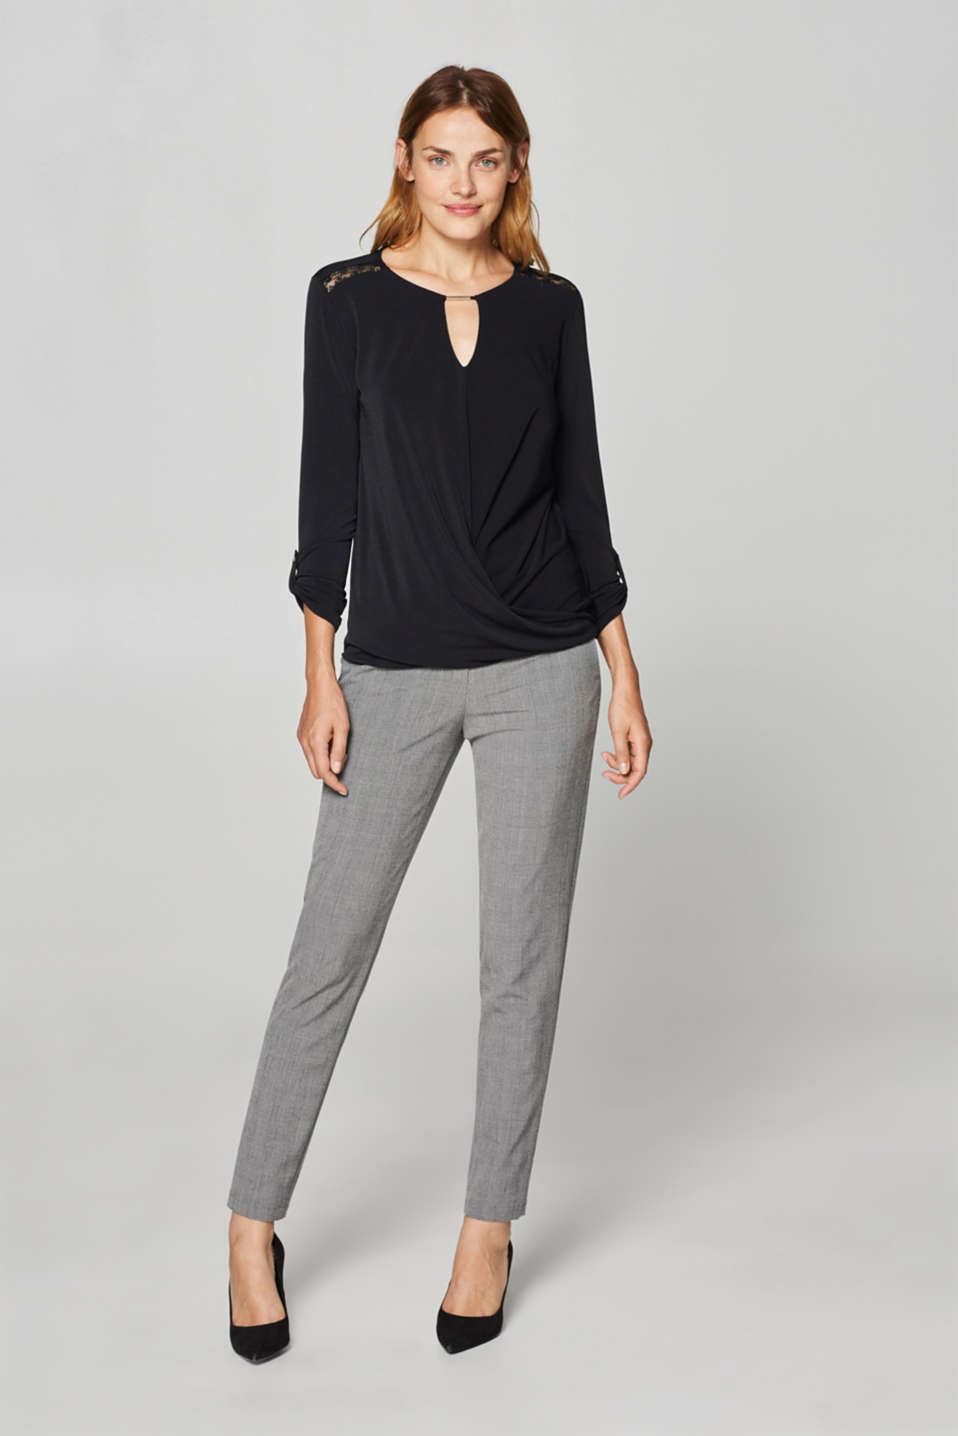 Stretchy long sleeve top with decorative details